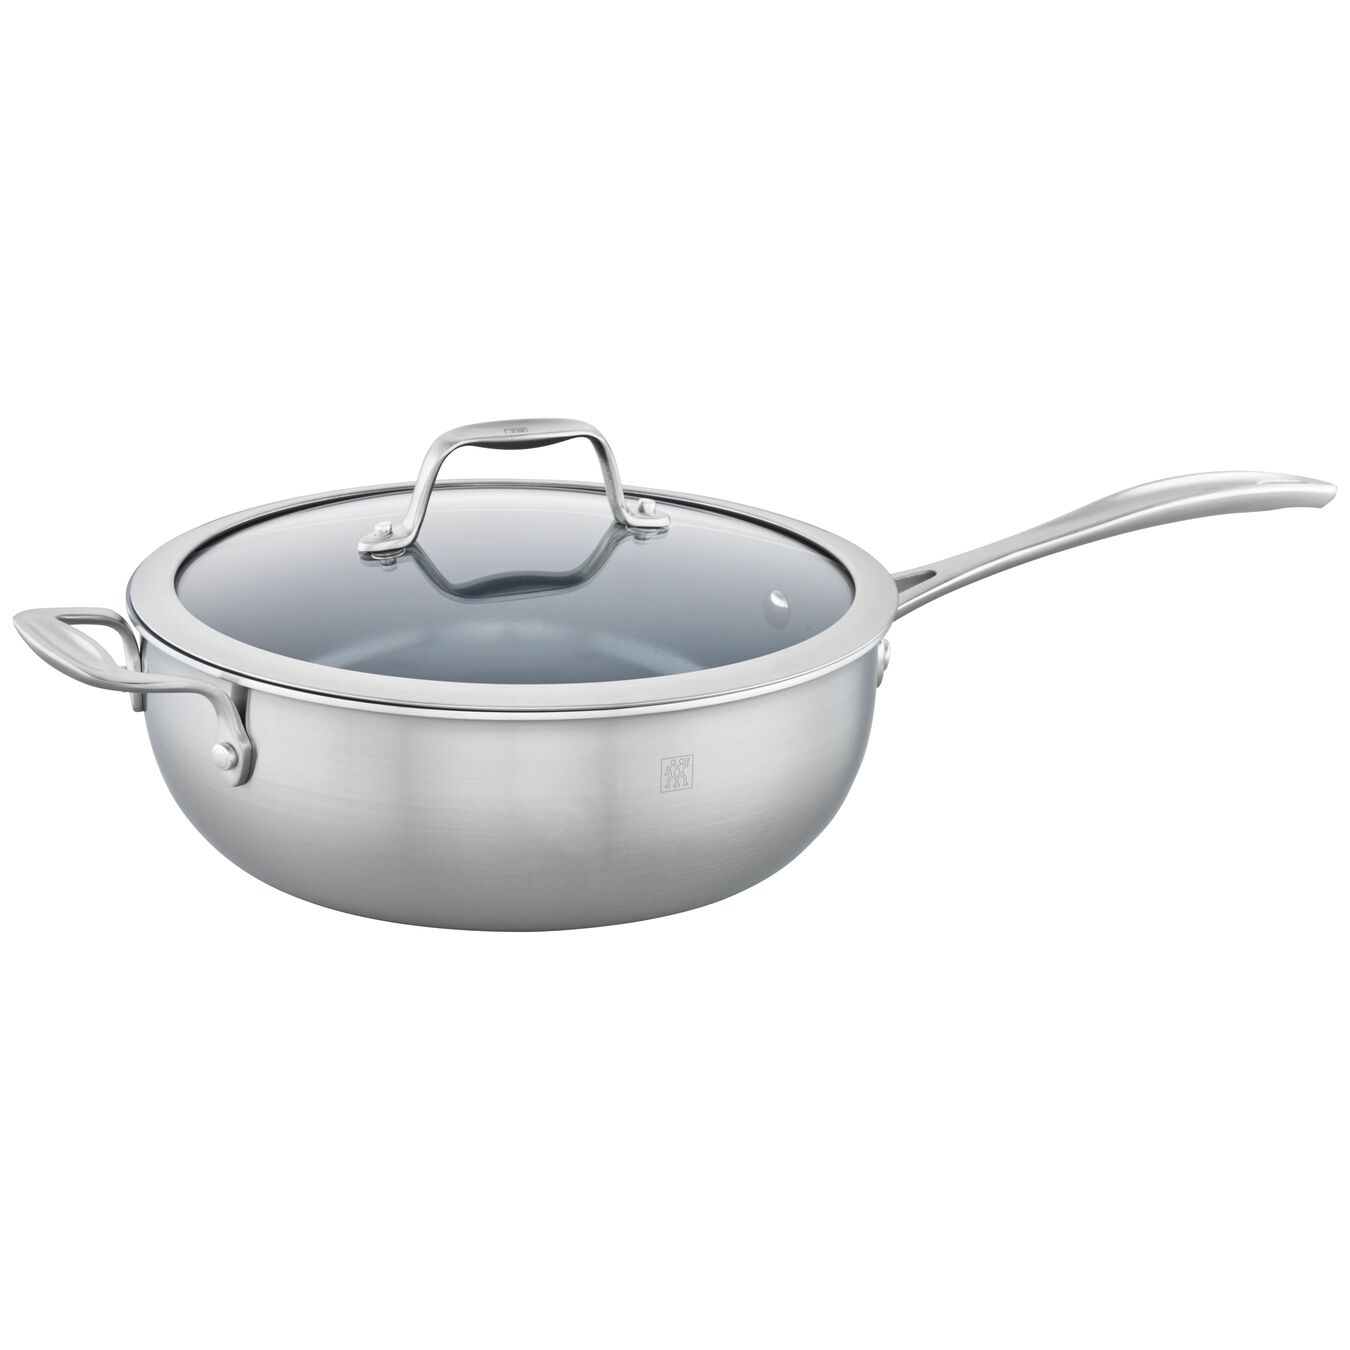 10-inch Saute pan, 18/10 Stainless Steel ,,large 2